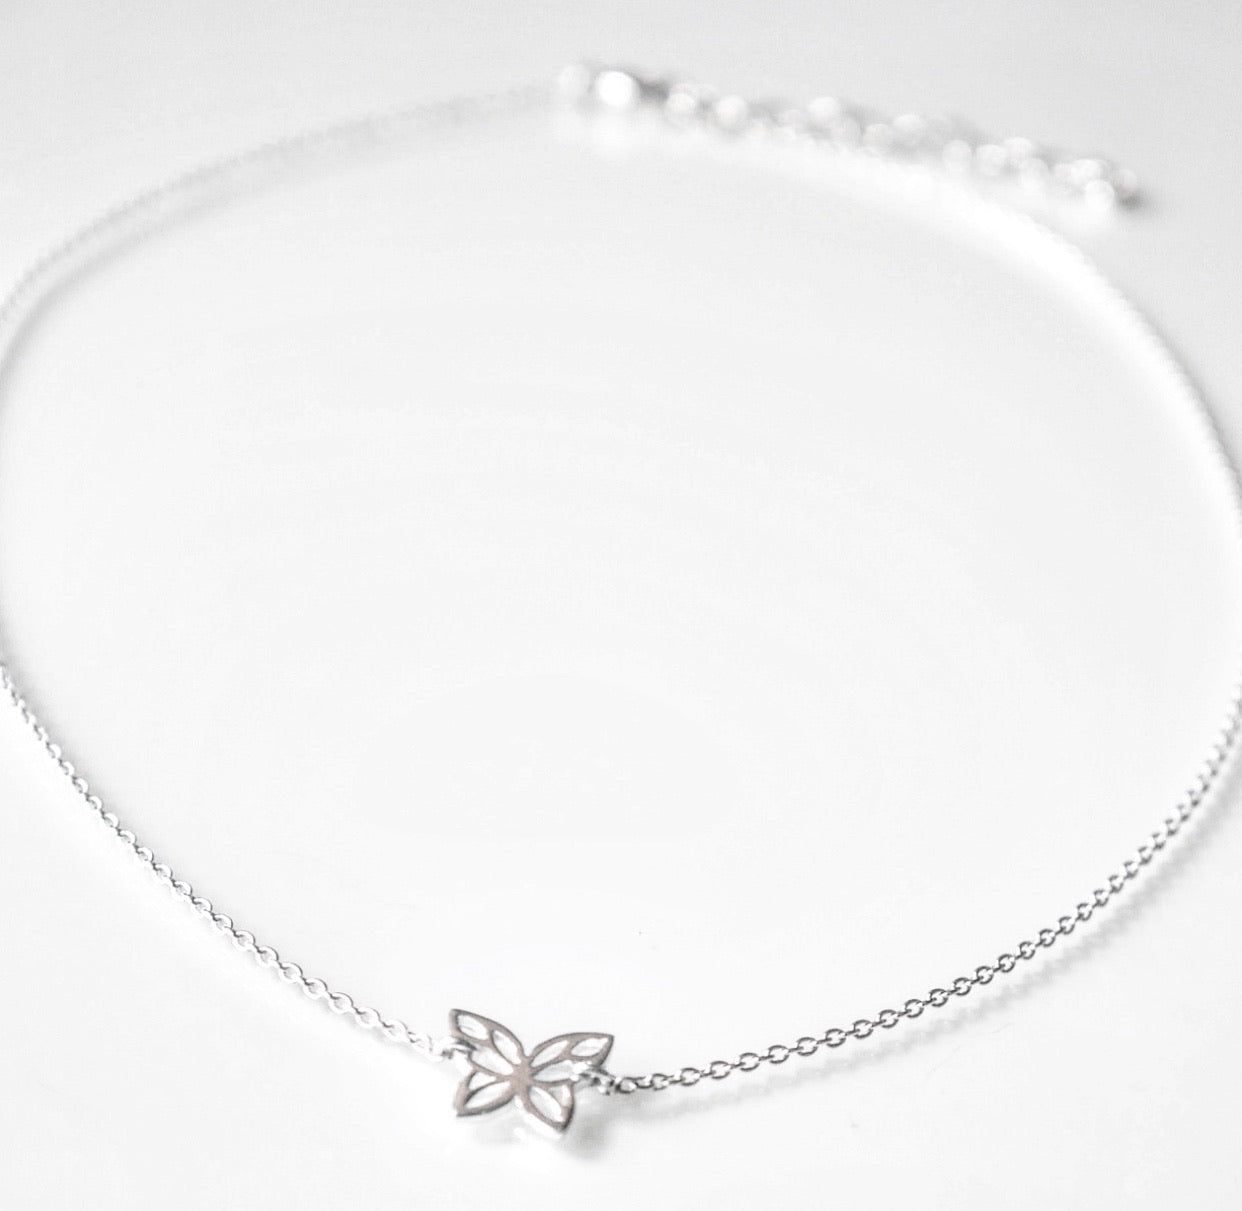 butterfly choker necklace, butterfly necklace in sterling silver, 925 sterling silver butterfly necklace butterfky jewelry by KesleyBoutique, girlwith3jobs